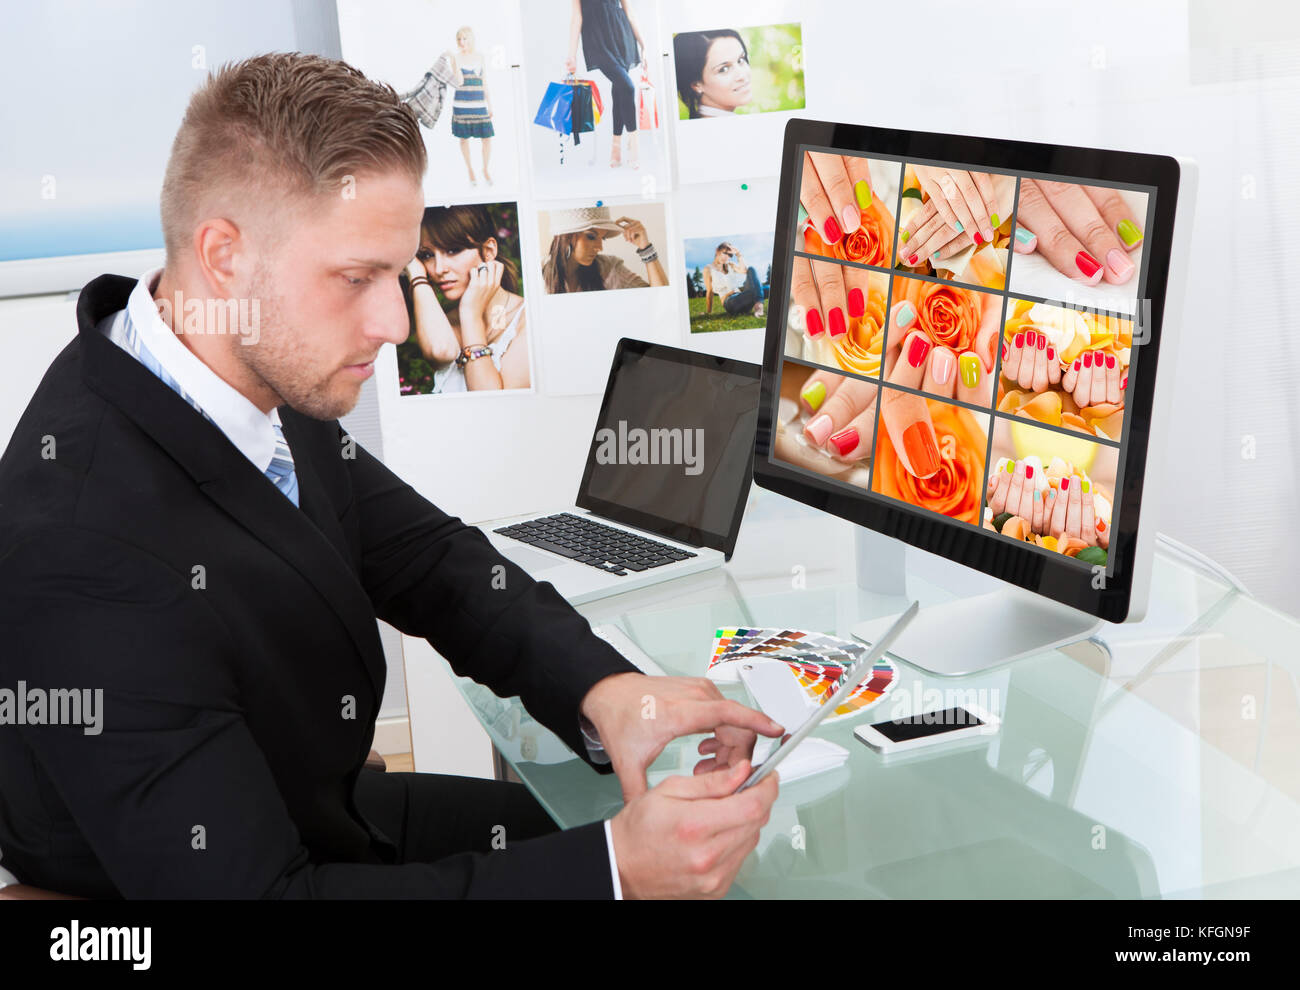 Businessman sitting at his desk in front of a large screen monitor editing photographs - Stock Image